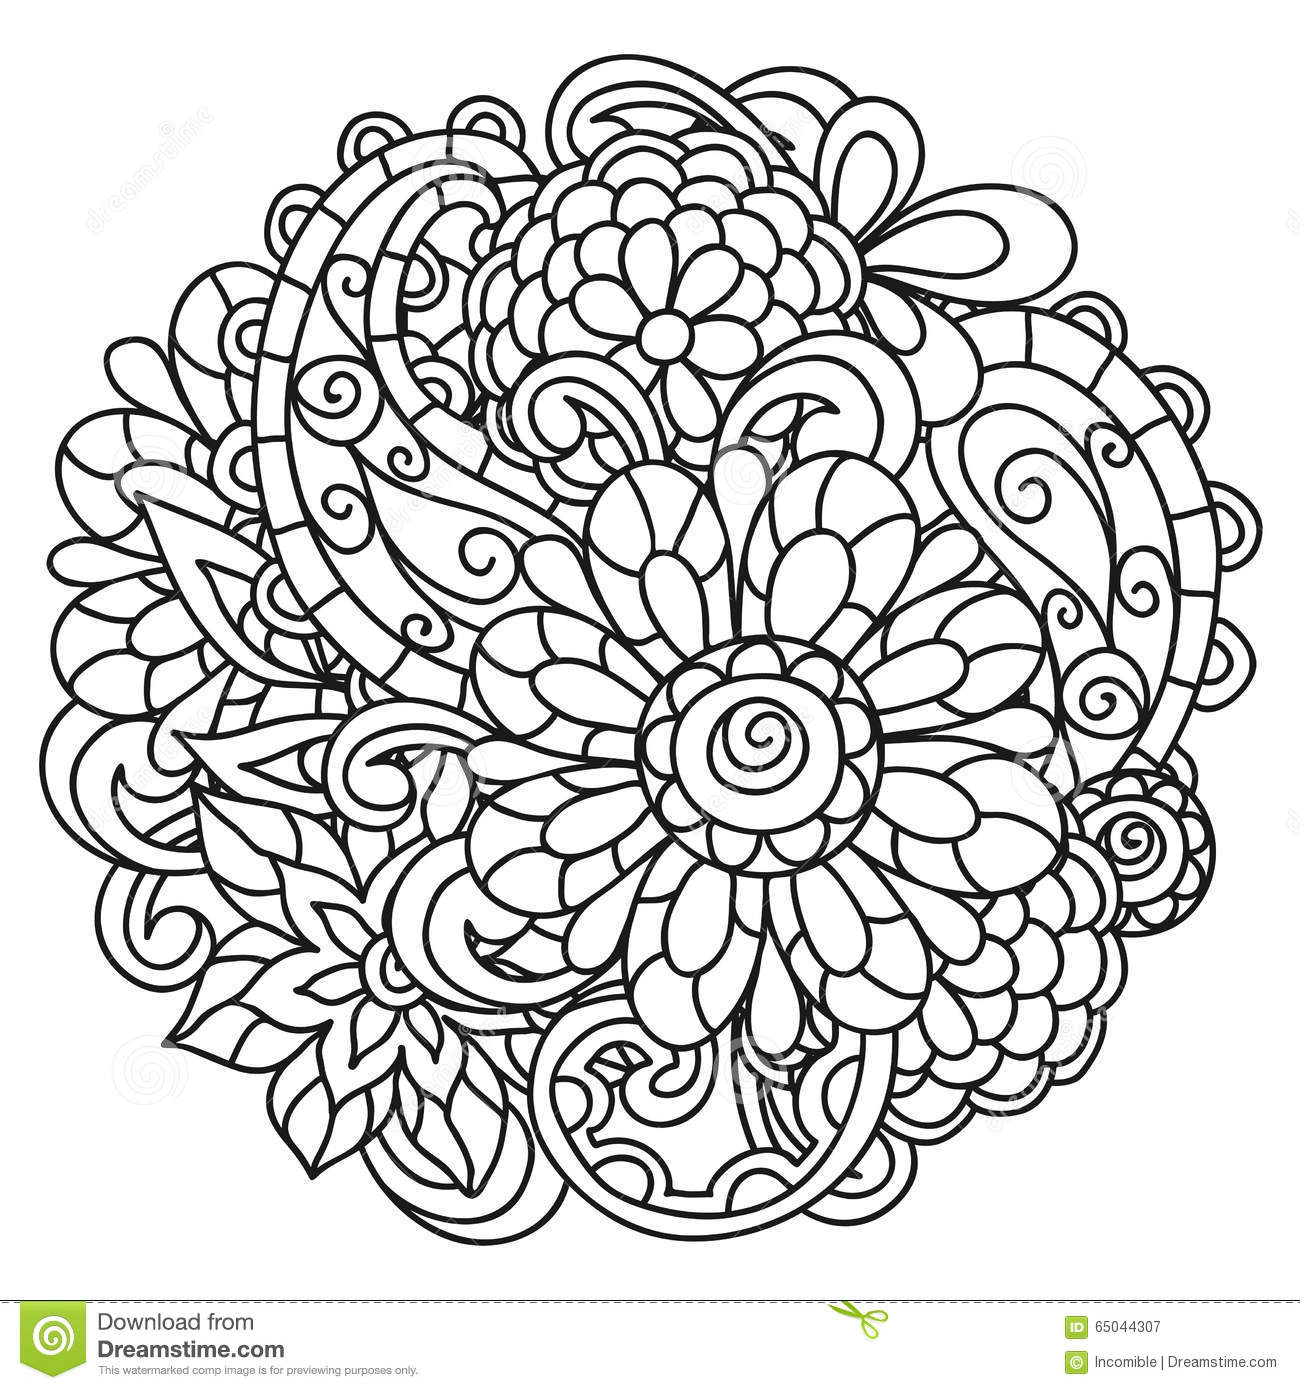 Coloring pages for adults flowers - Adult Background Coloring Drawing Line Page